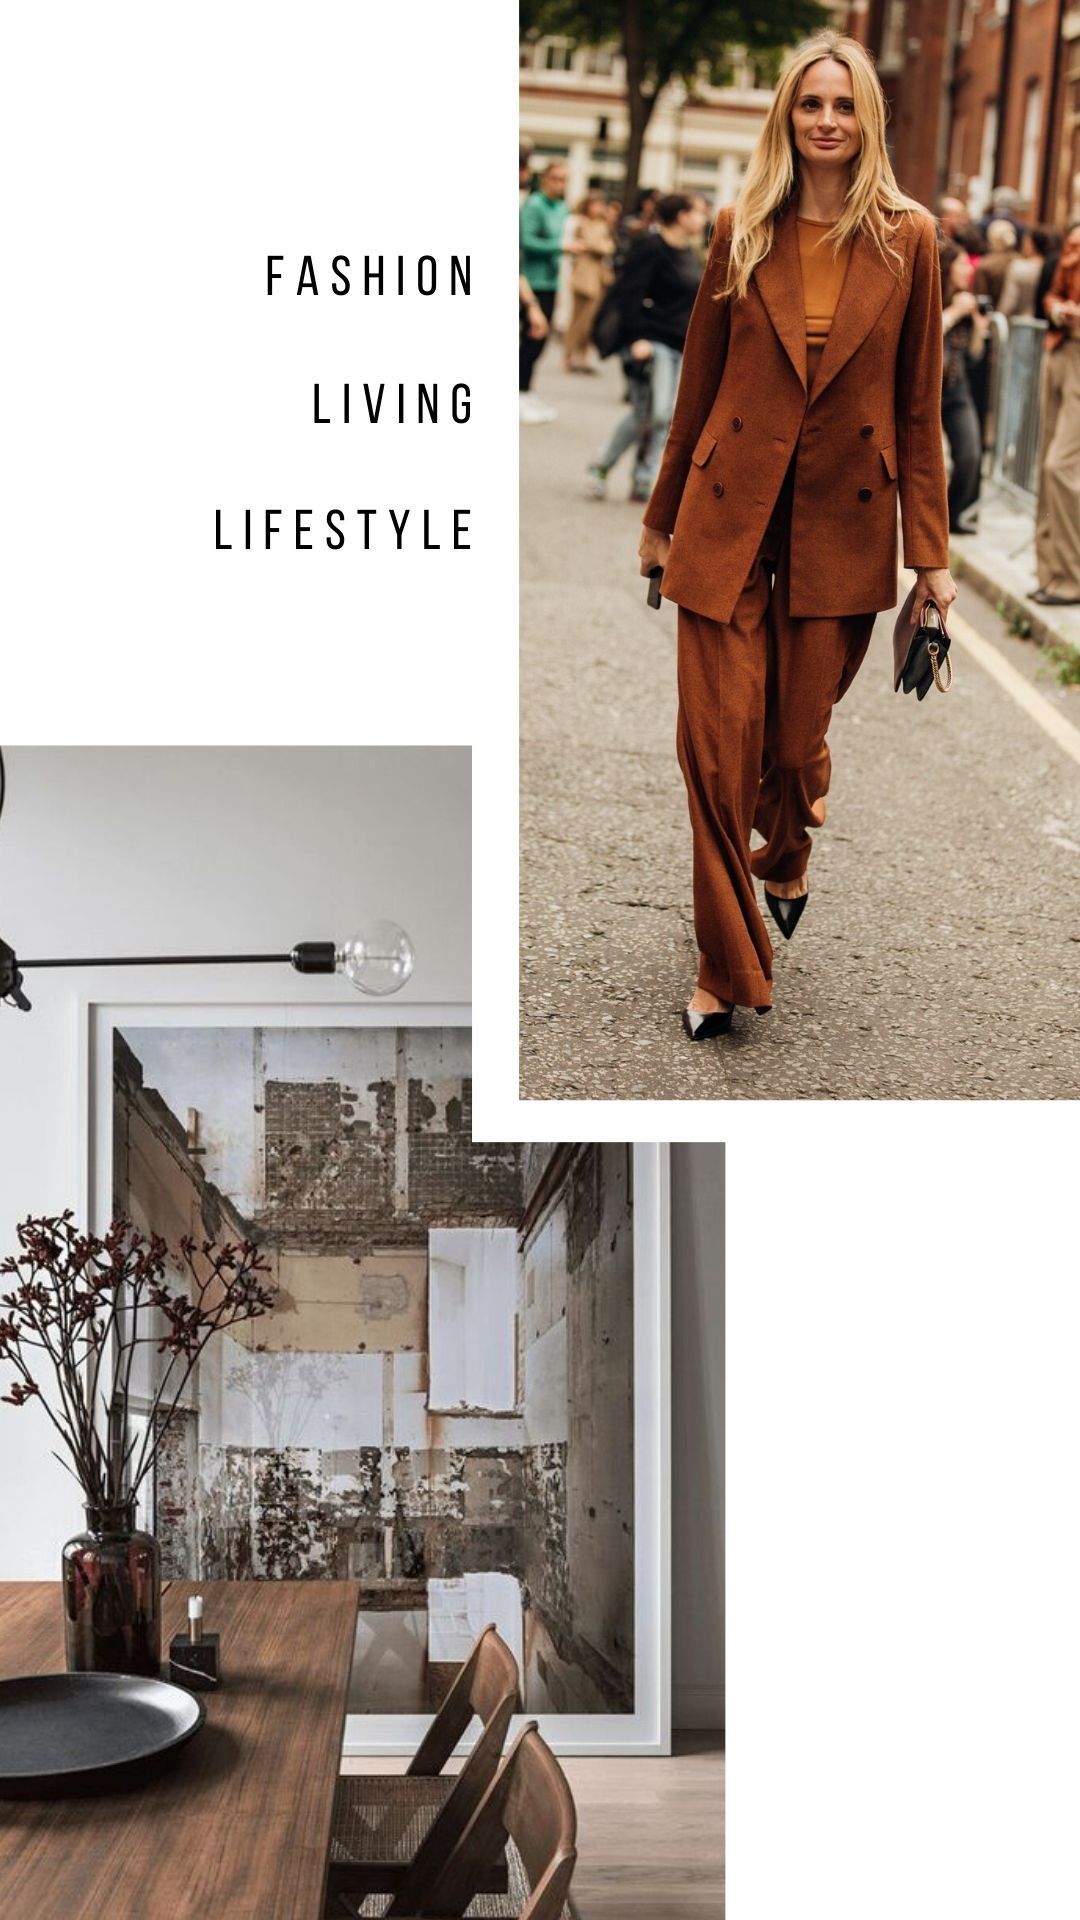 fashion-living-lifestyleevidenza